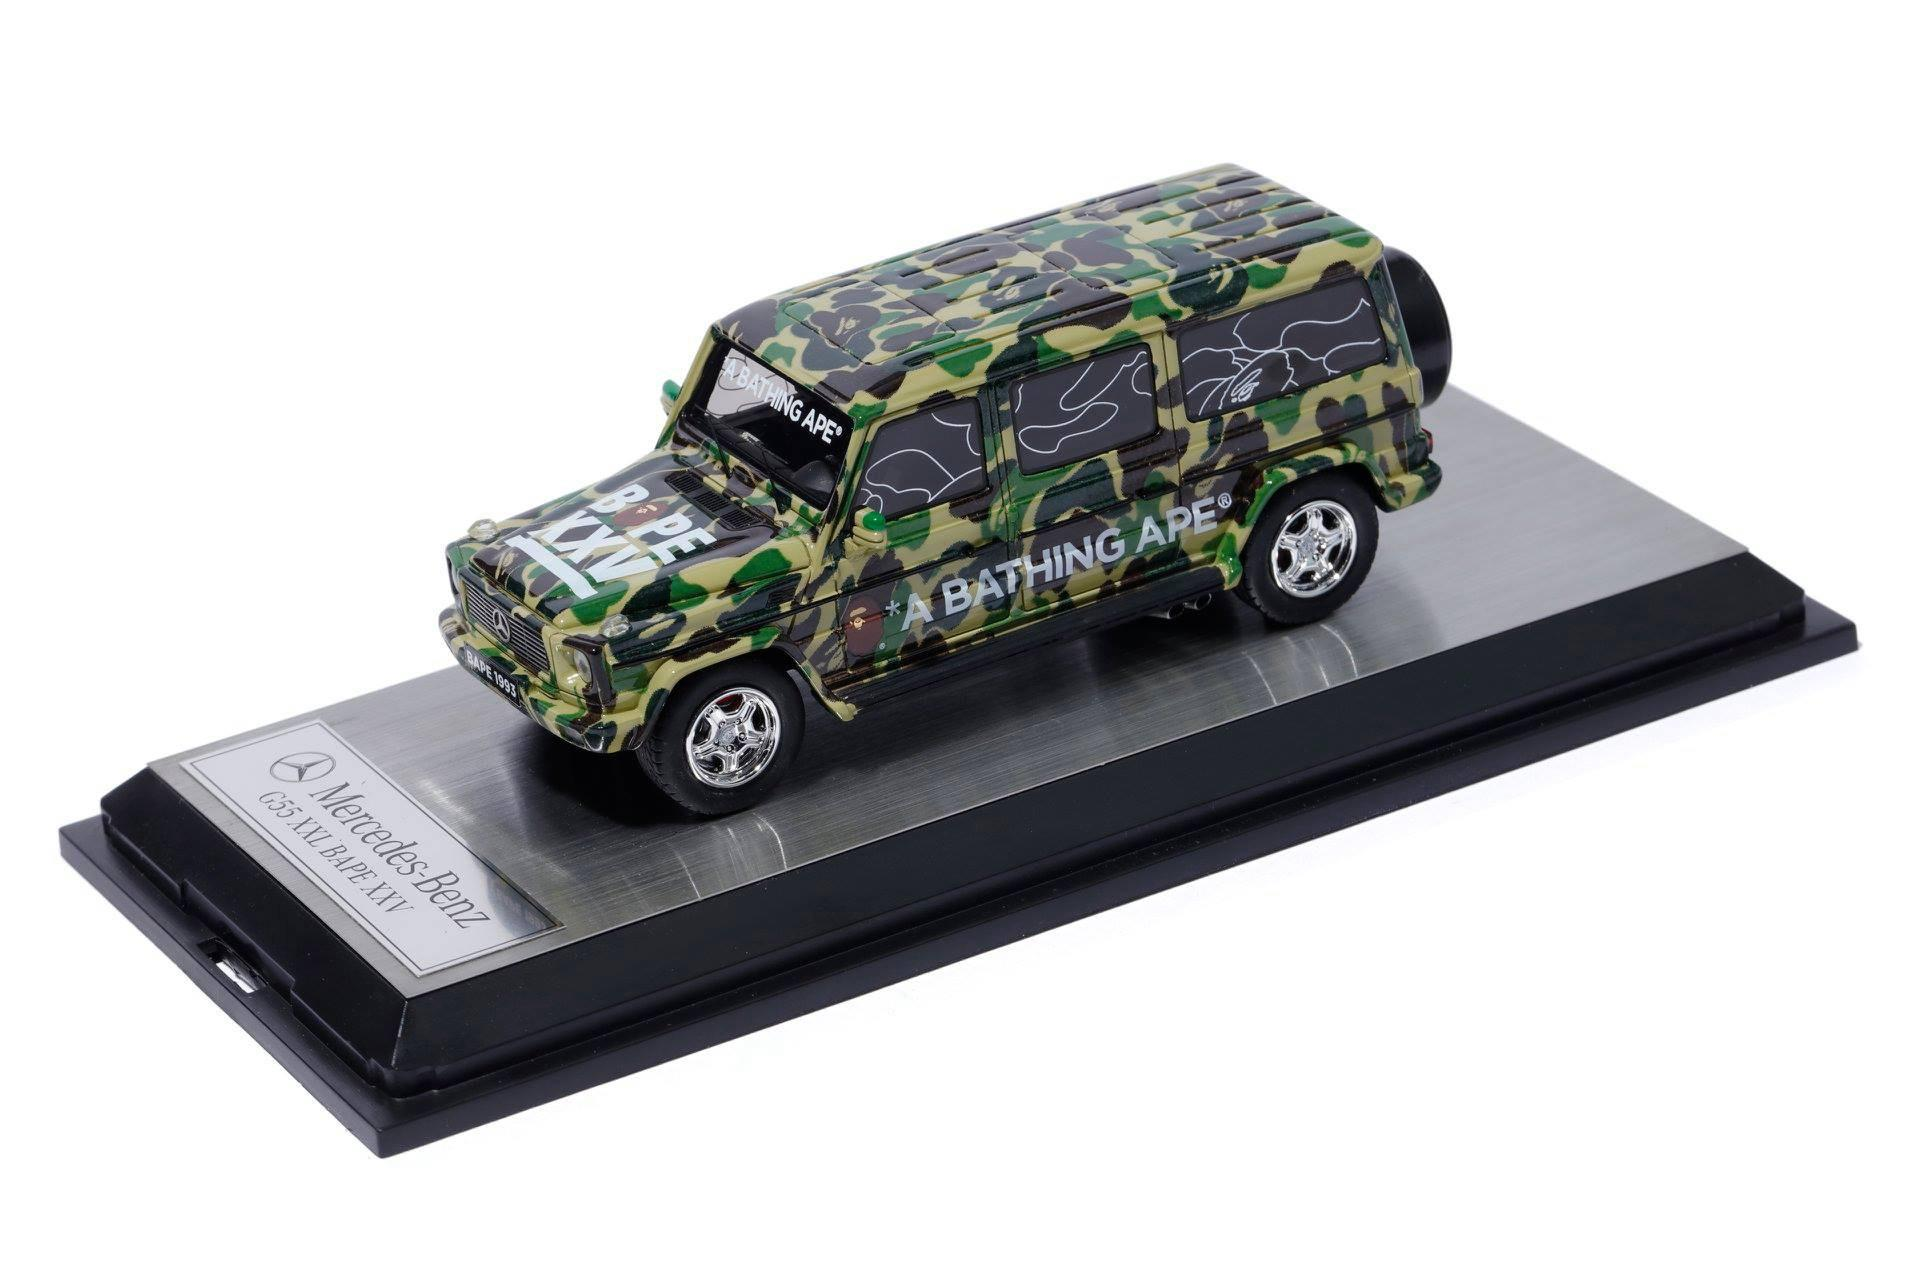 Bape To Release Special Schuco Mercedes Mini Car For Its